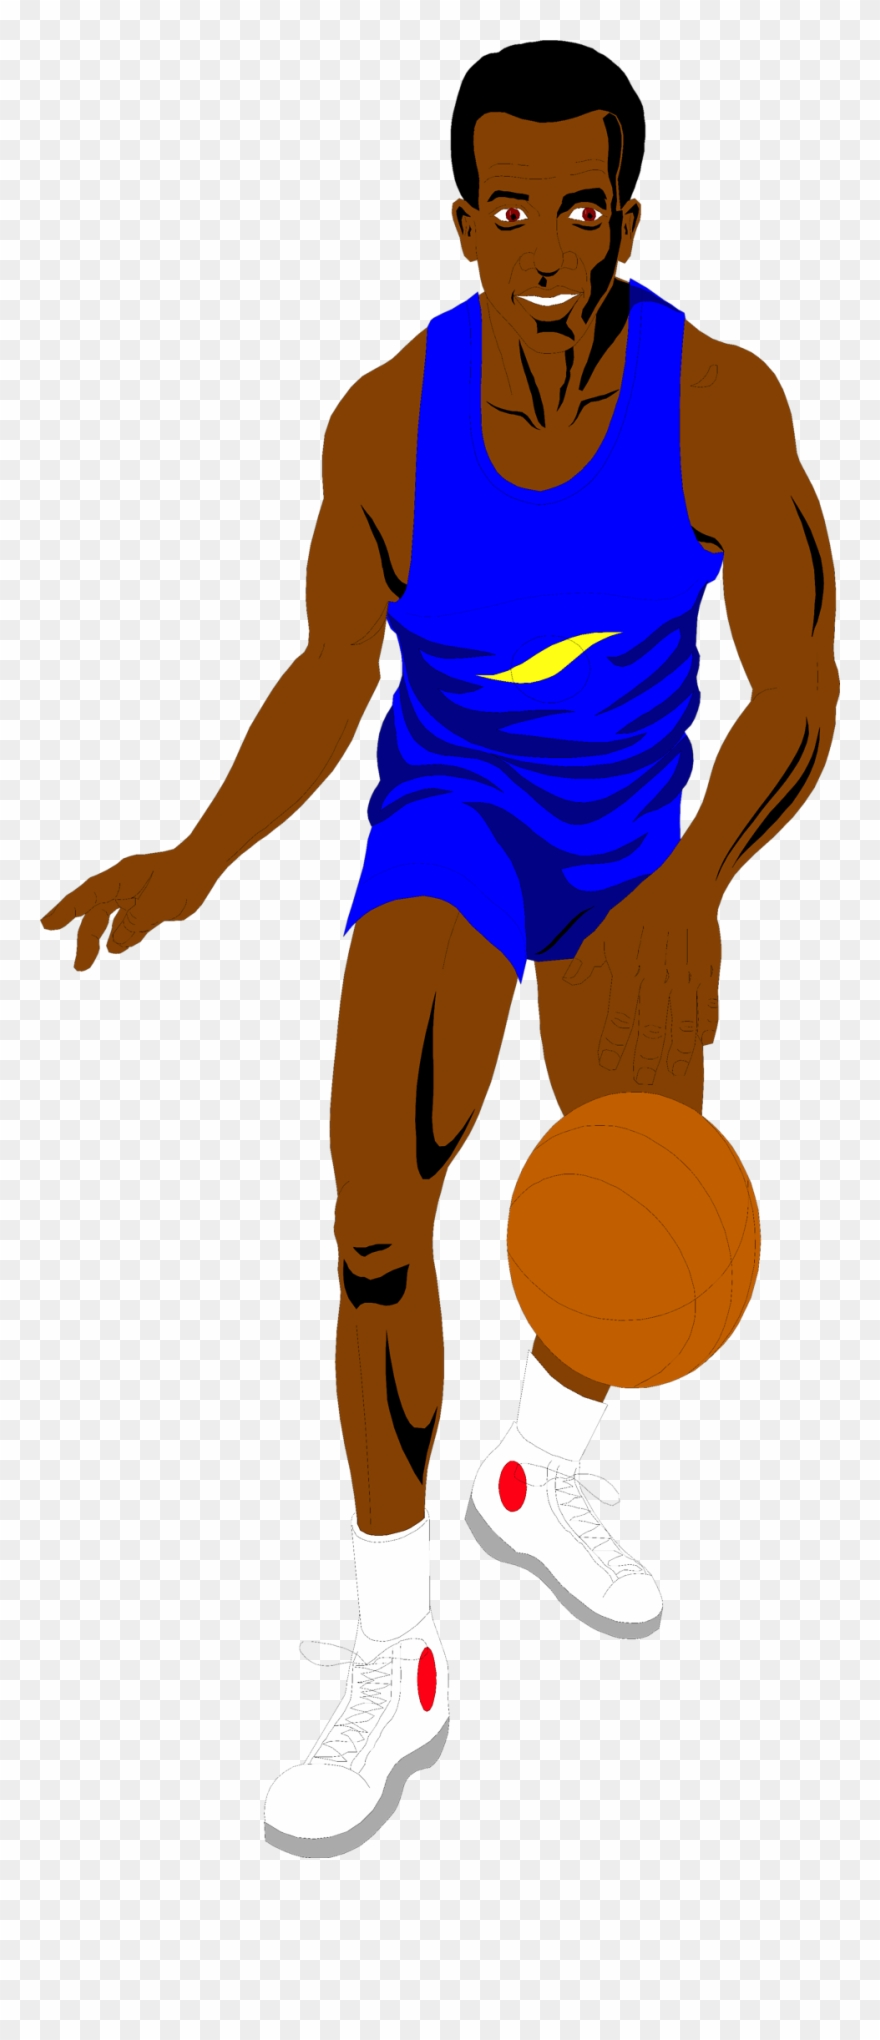 No kick clipart picture transparent library Dunking - African American No Background Clipart (#434997 ... picture transparent library